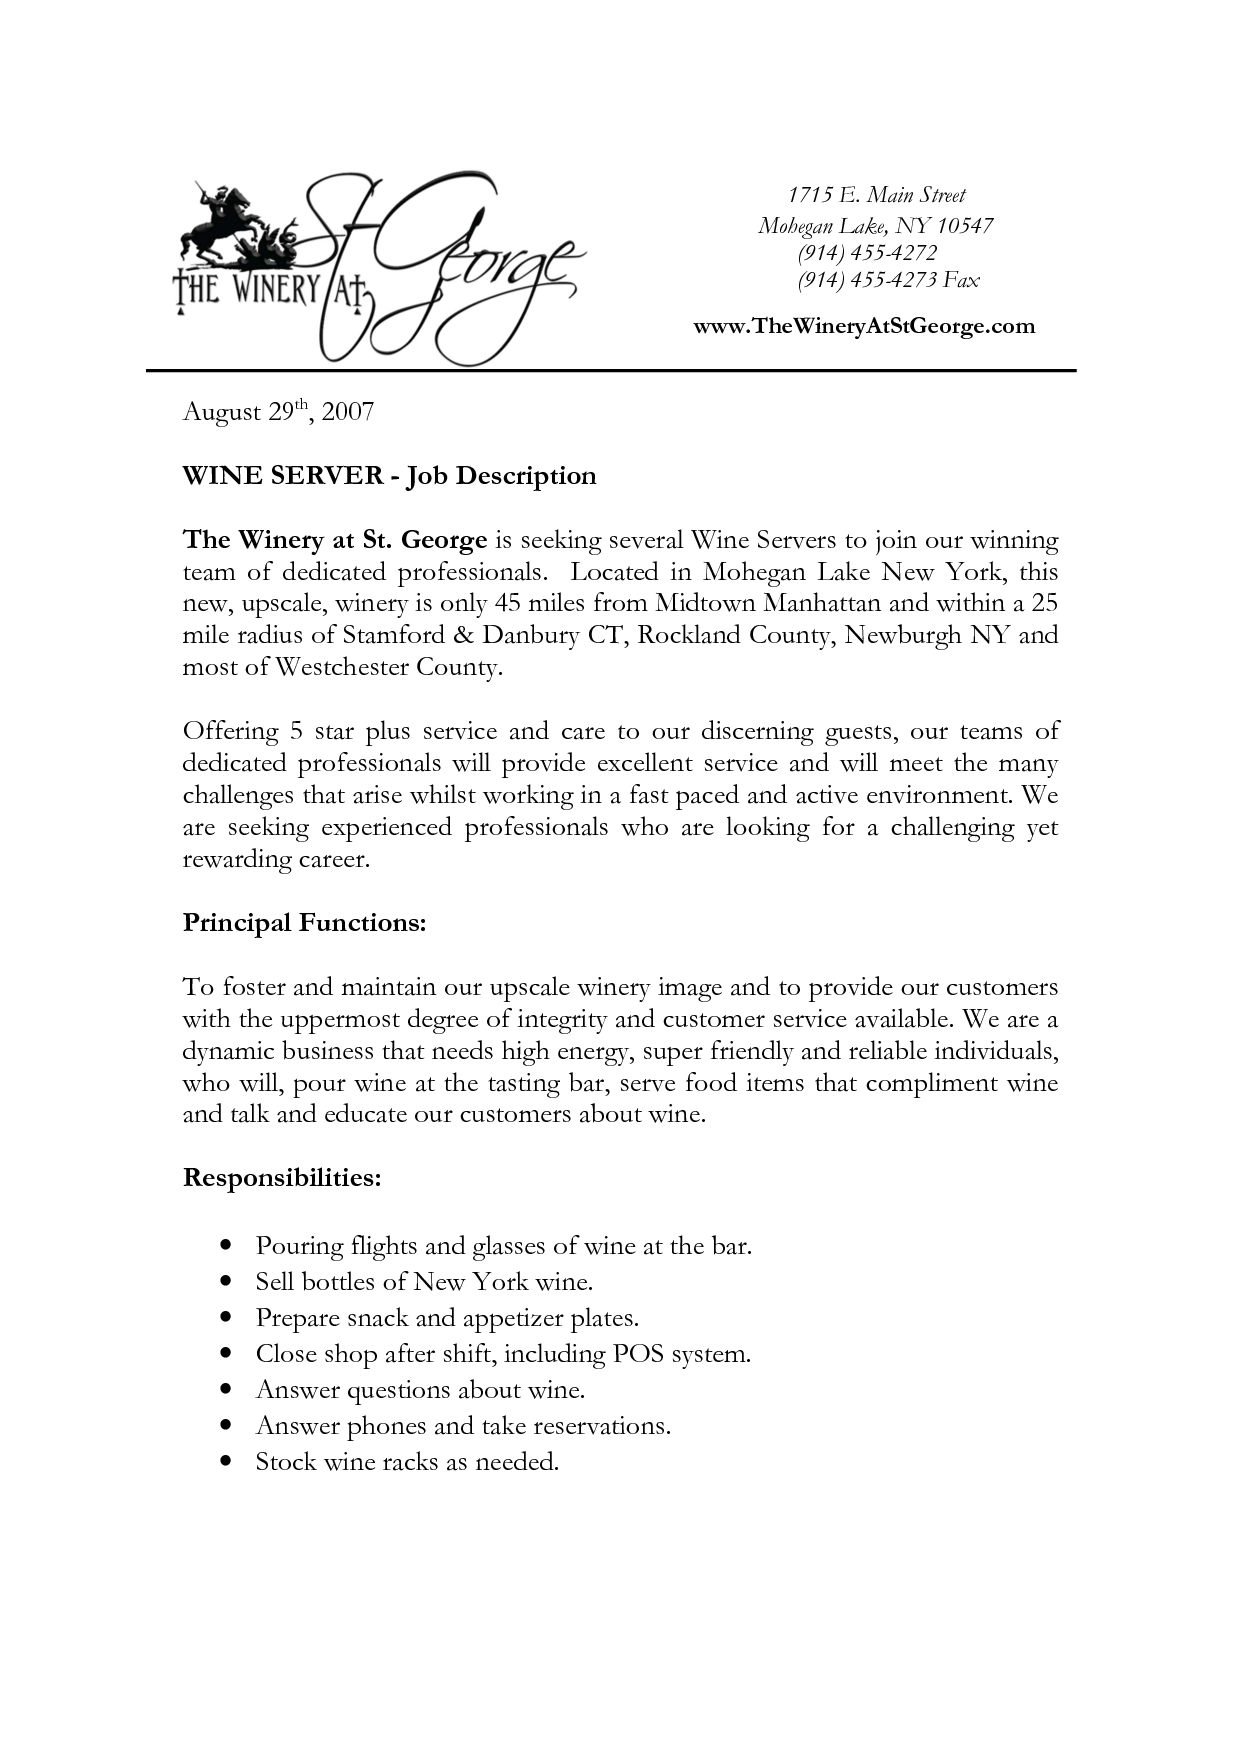 claims representative resume for insurance claims representative server job description server job description resume george